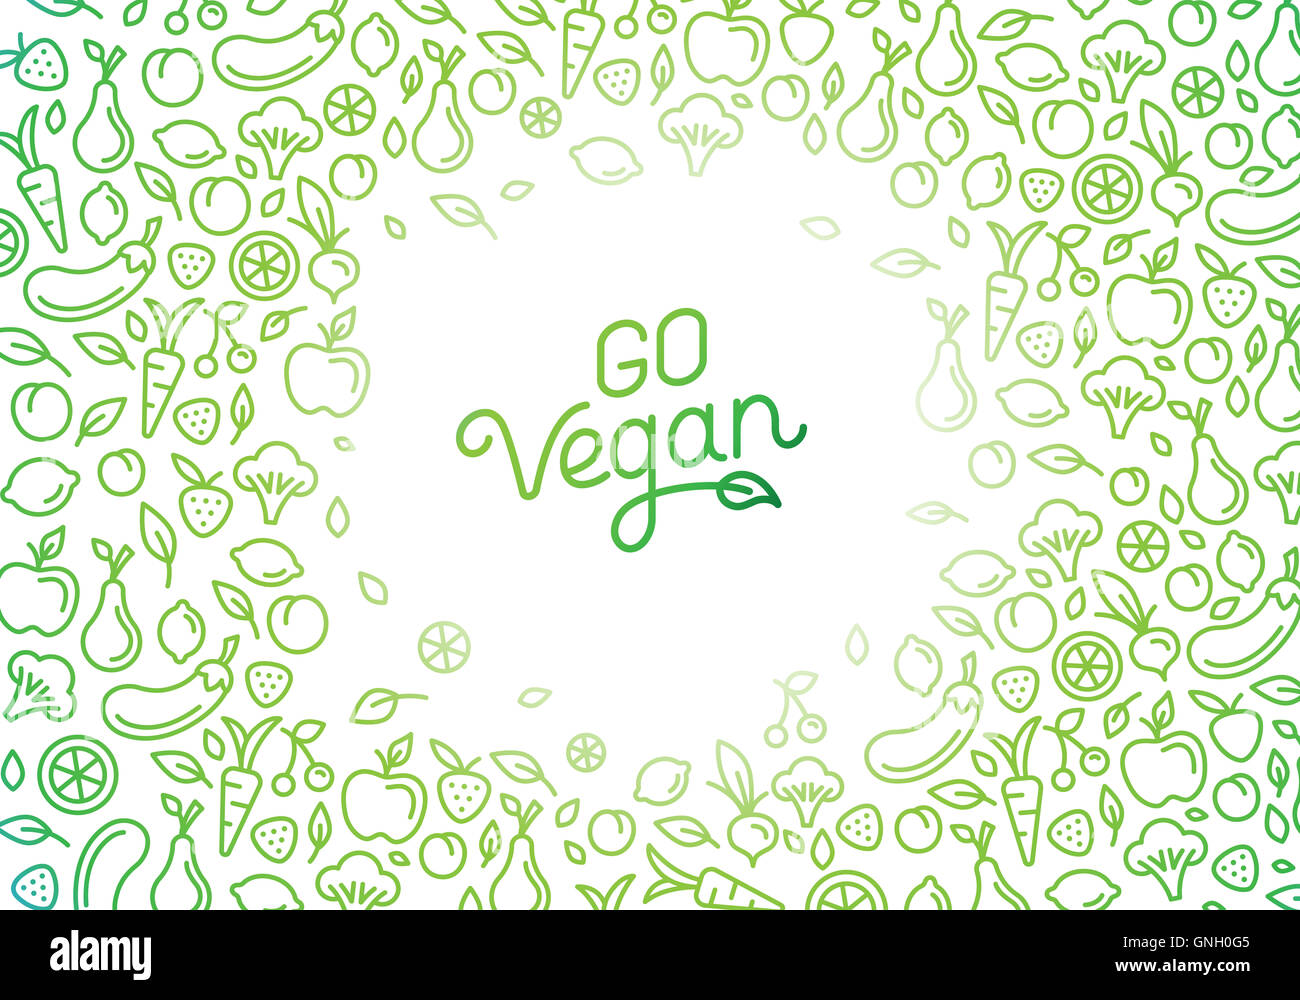 Go Vegan Motivational Poster Or Banner With Hand Lettering Phrase Stock Photo Alamy